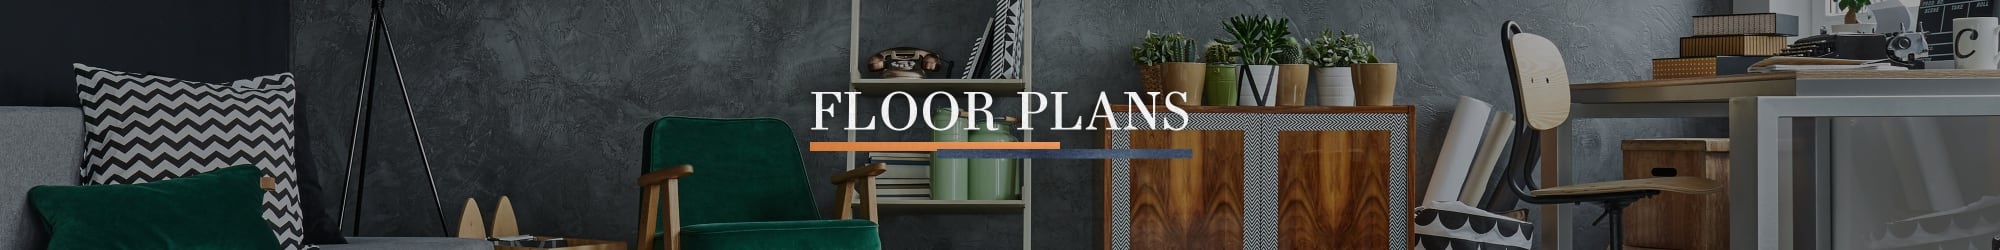 Floor plans at Alloy by Alta in College Park, Maryland